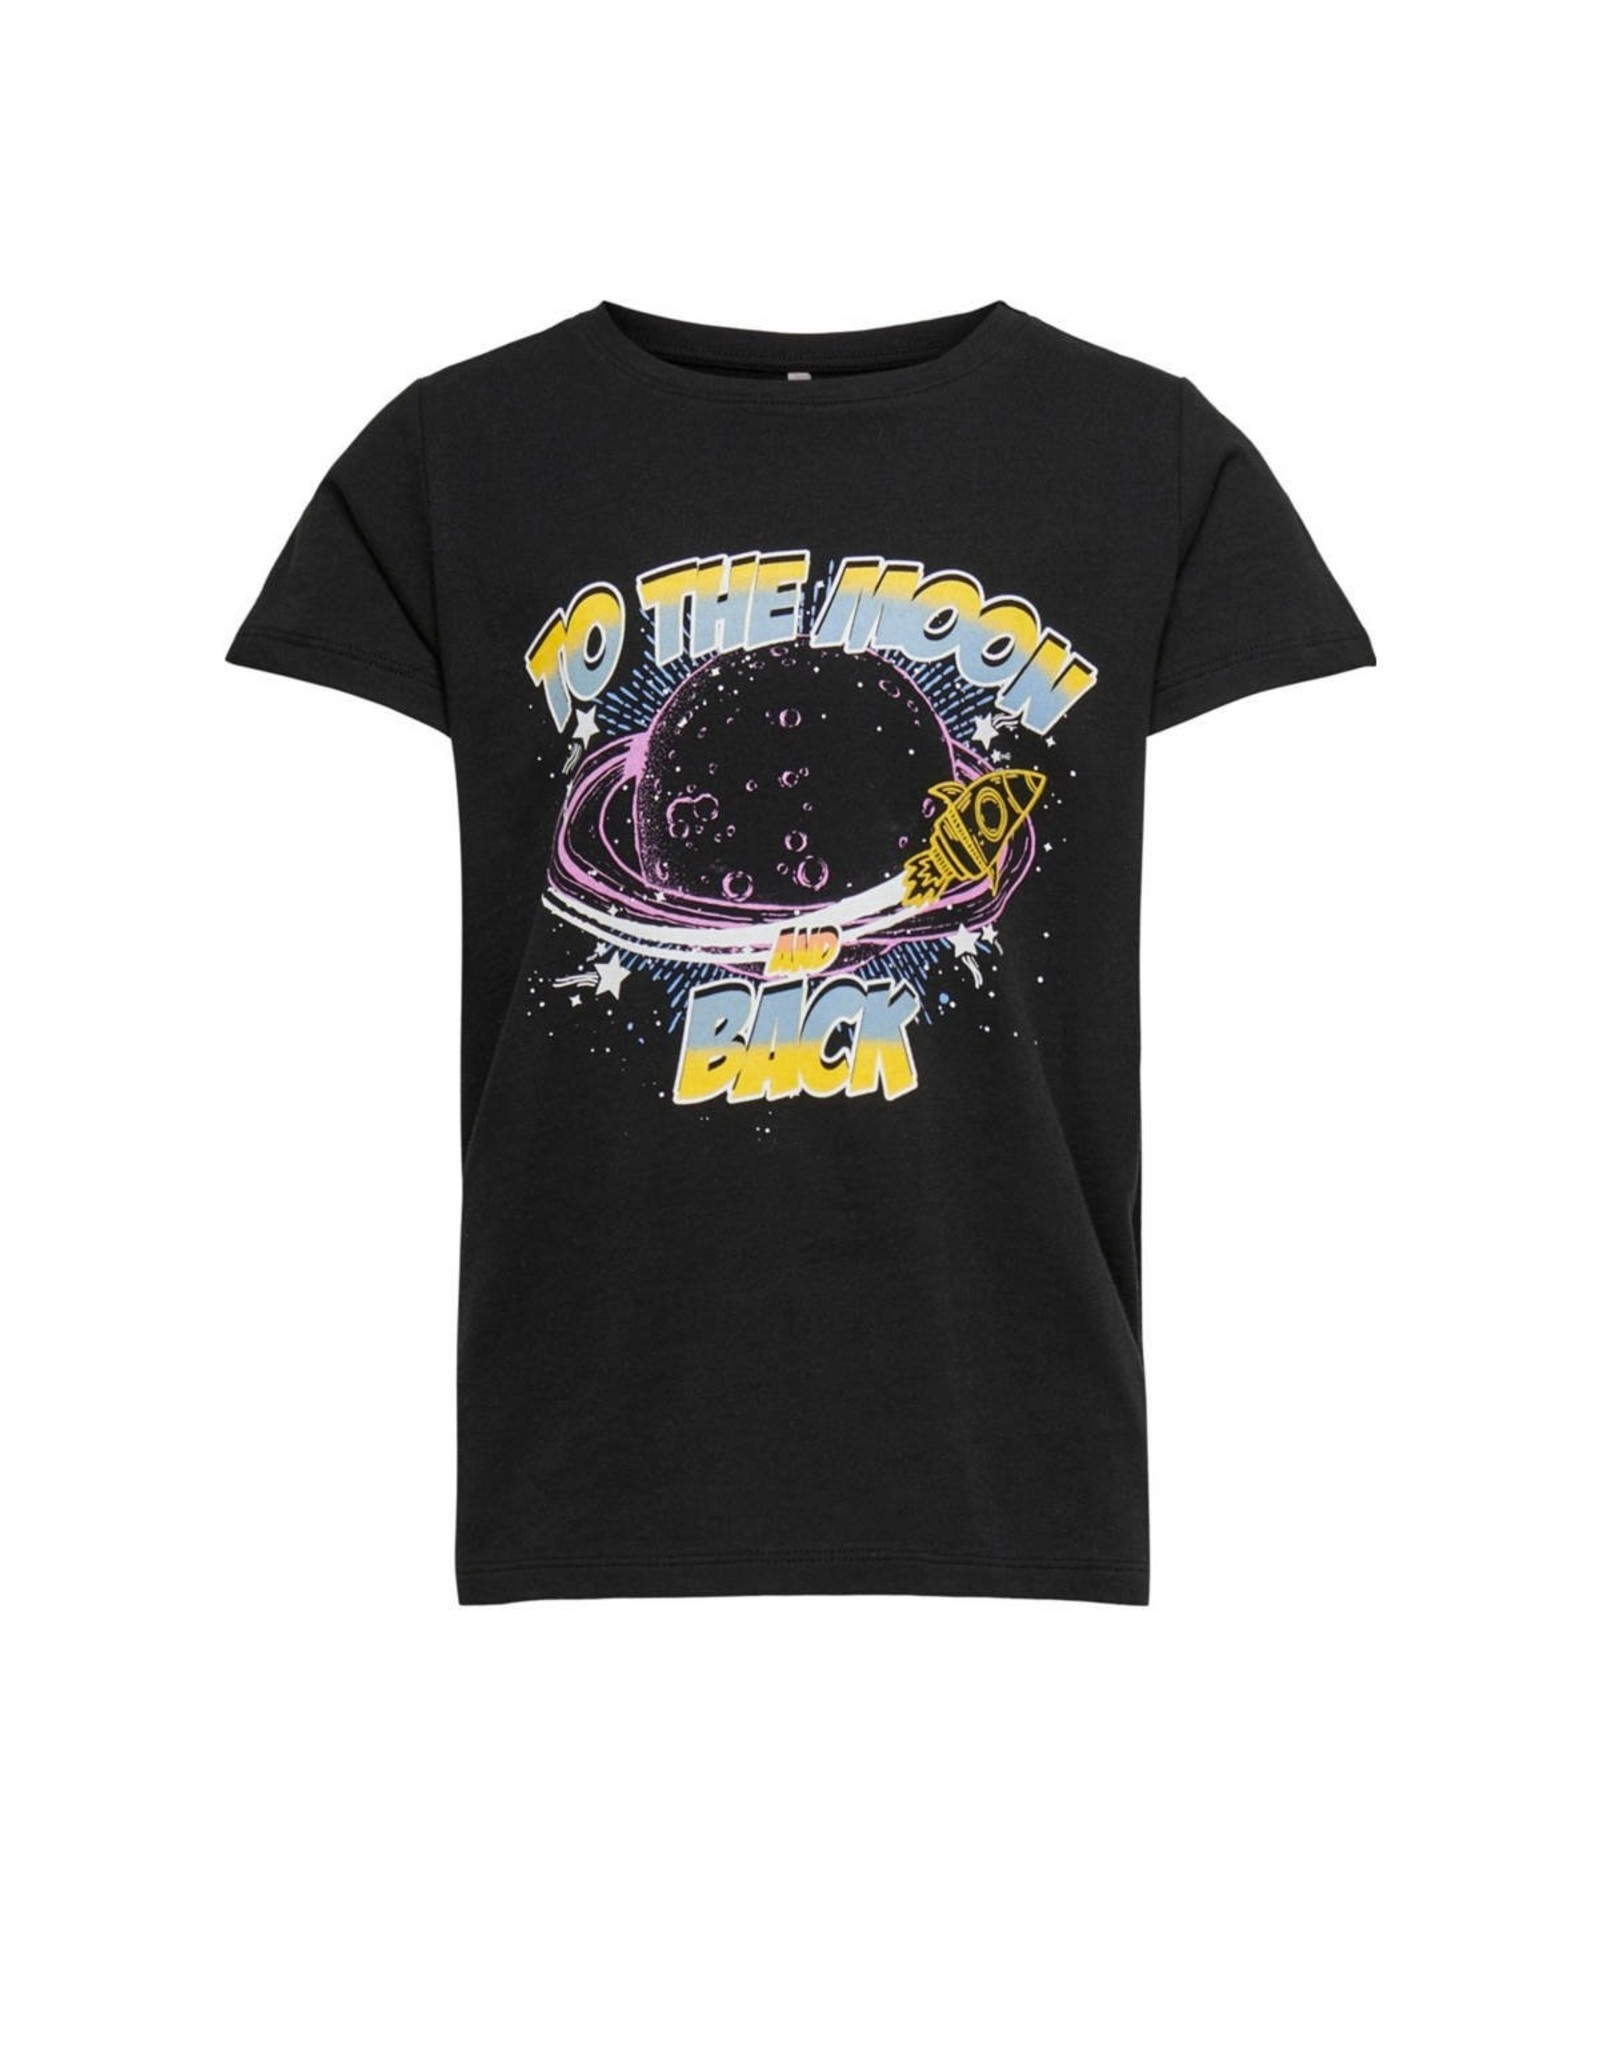 Kids Only T-shirt Else To The Moon Black